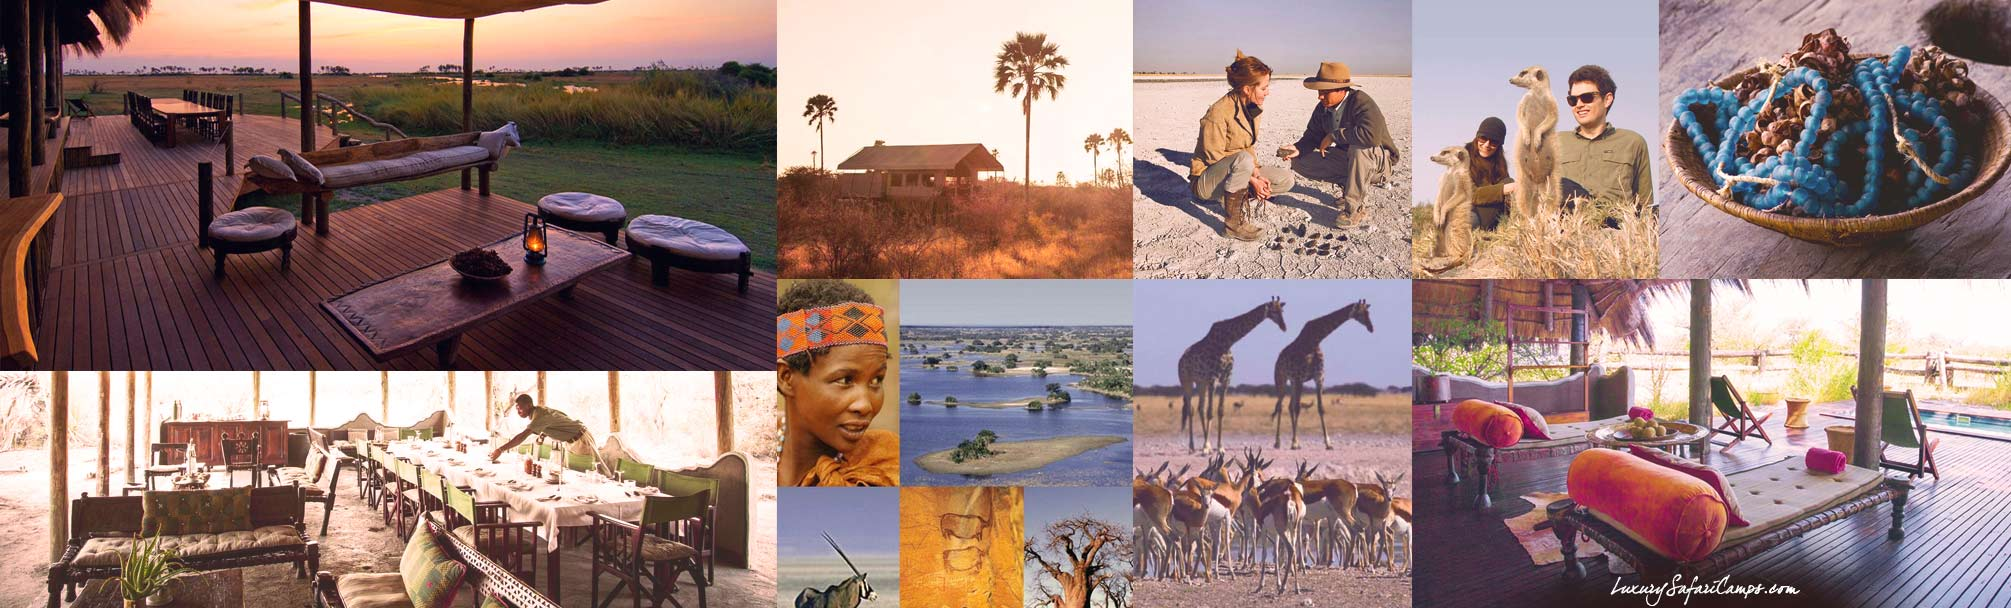 Camp Kalahari with Guided Safaris® LuxurySafariCamps.com